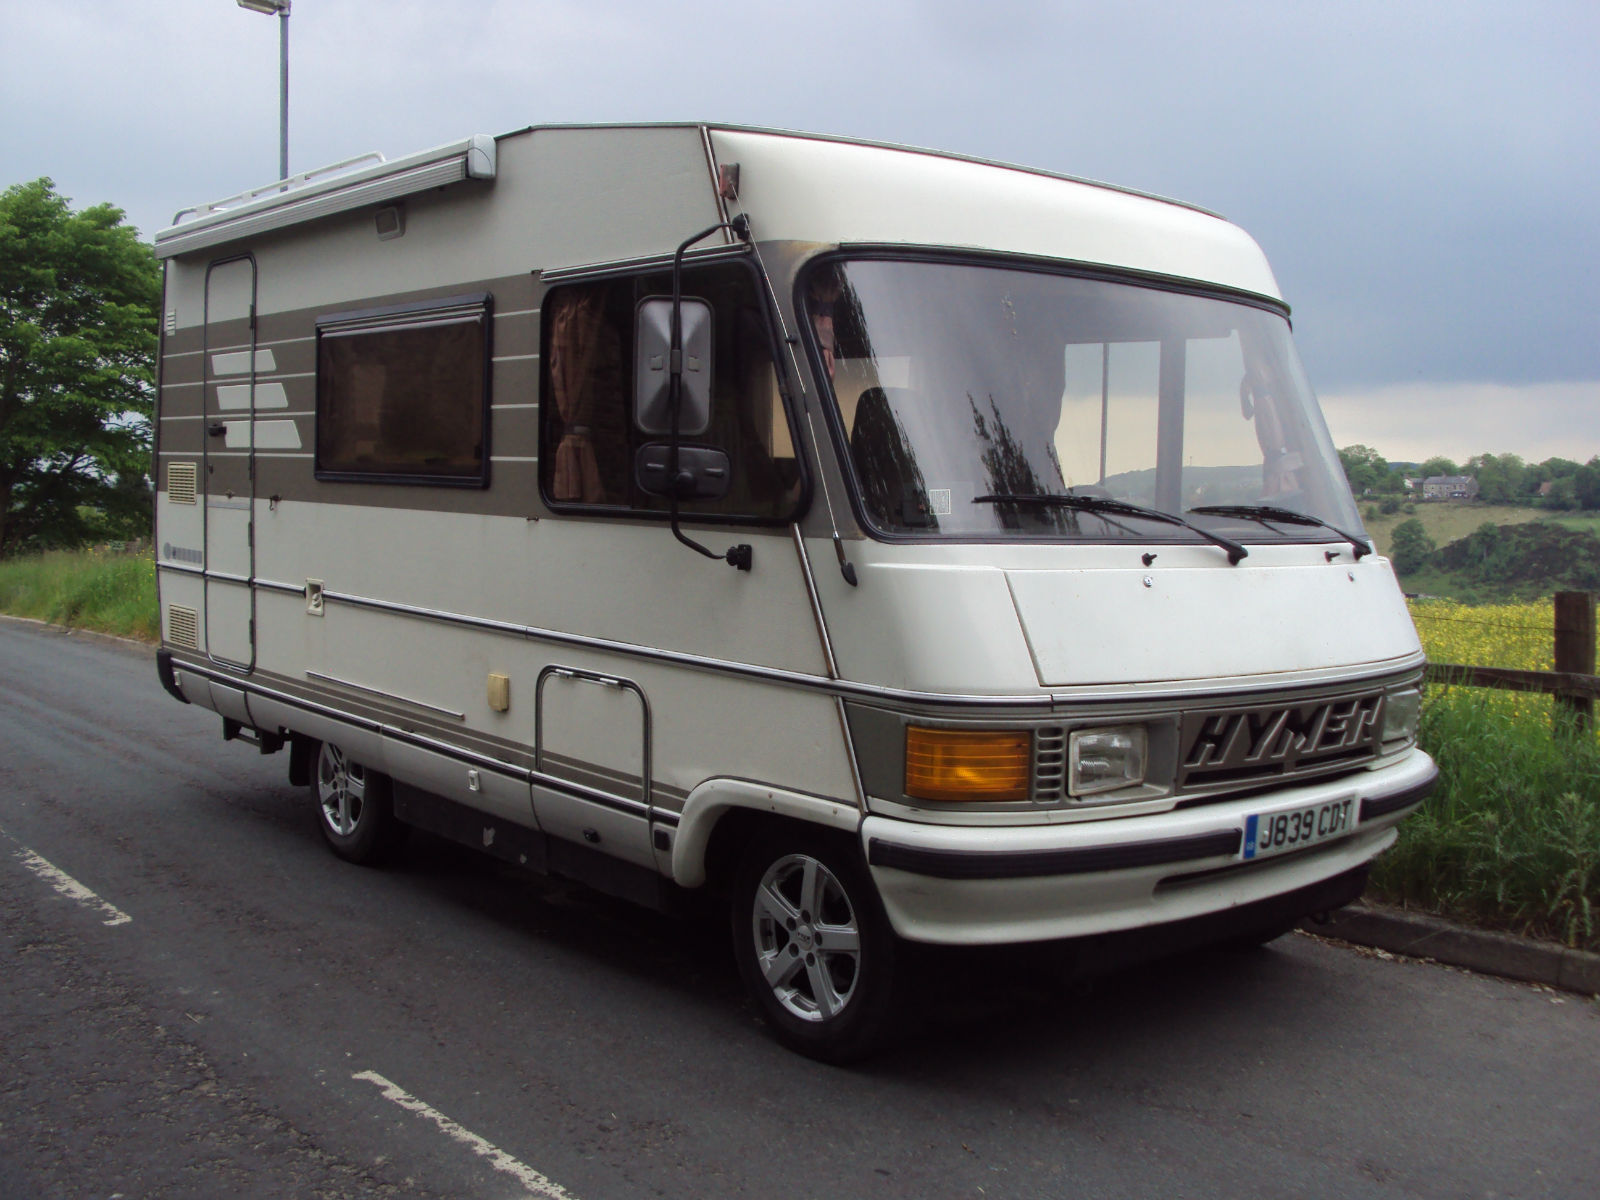 Used Rvs 1991 Fiat Ducato Hymer For Sale For Sale By Owner